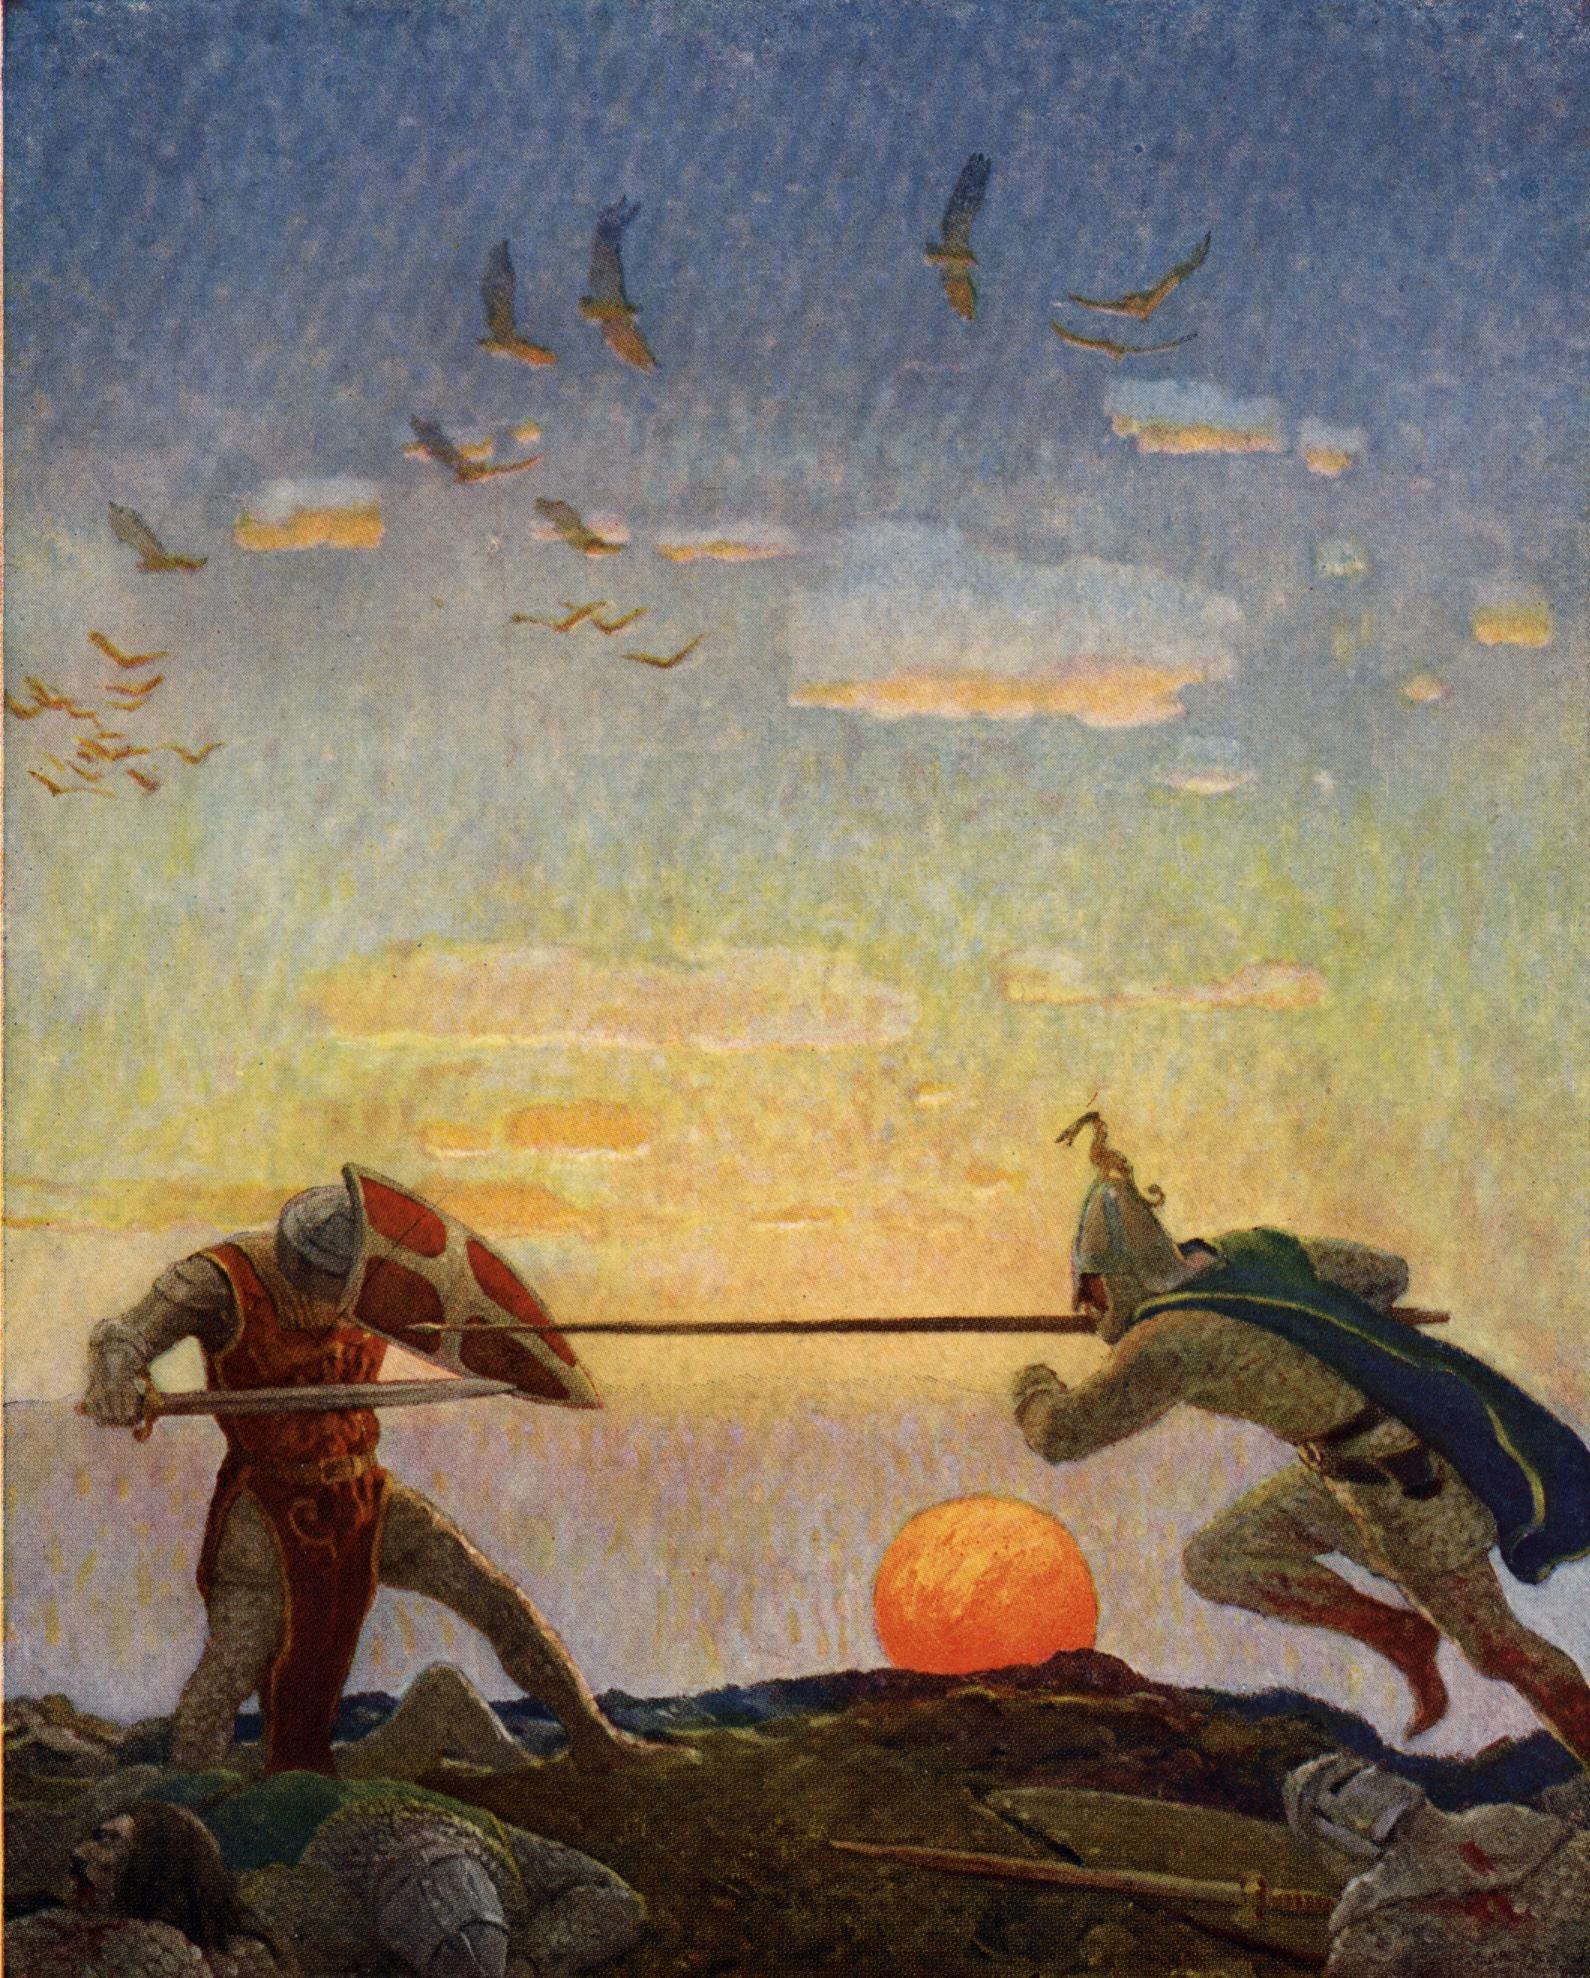 http://upload.wikimedia.org/wikipedia/commons/f/f3/Boys_King_Arthur_-_N._C._Wyeth_-_p306.jpg